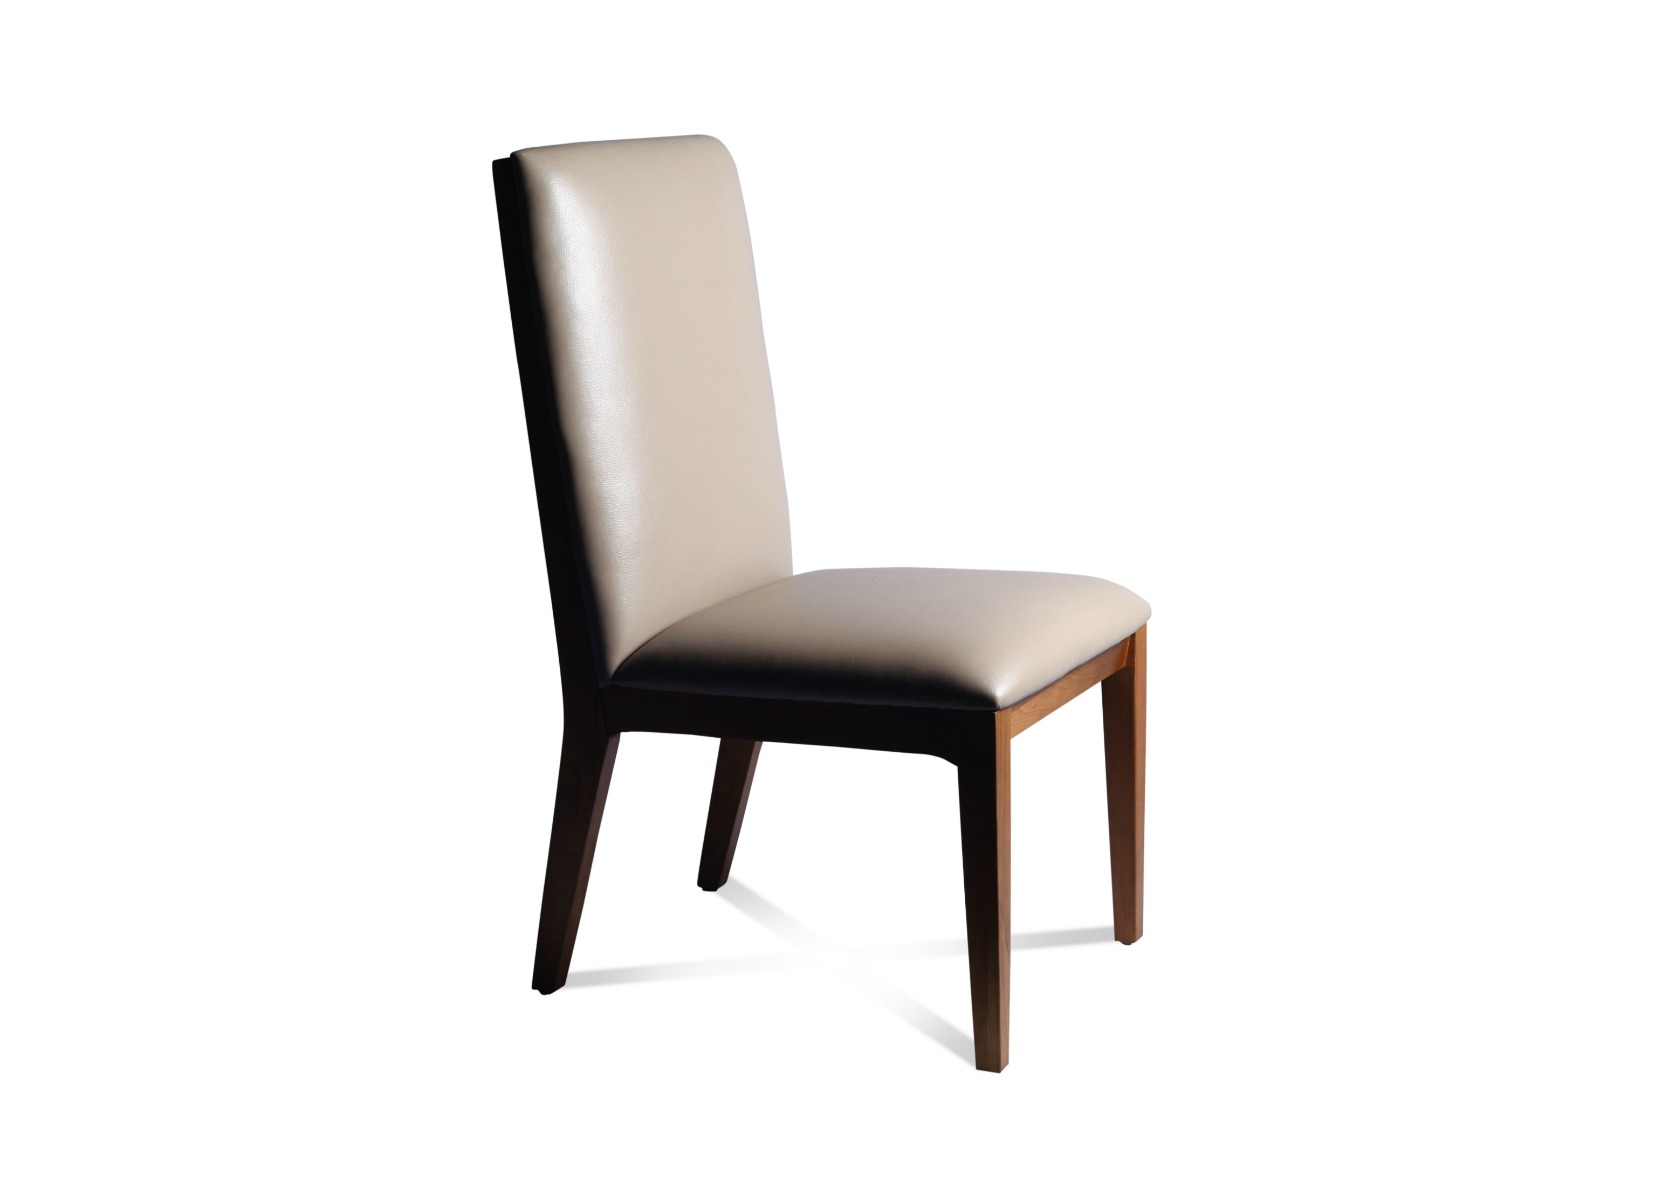 Taupe Dining Chairs Spira Dining Chair In Taupe Leather Not Just Brown